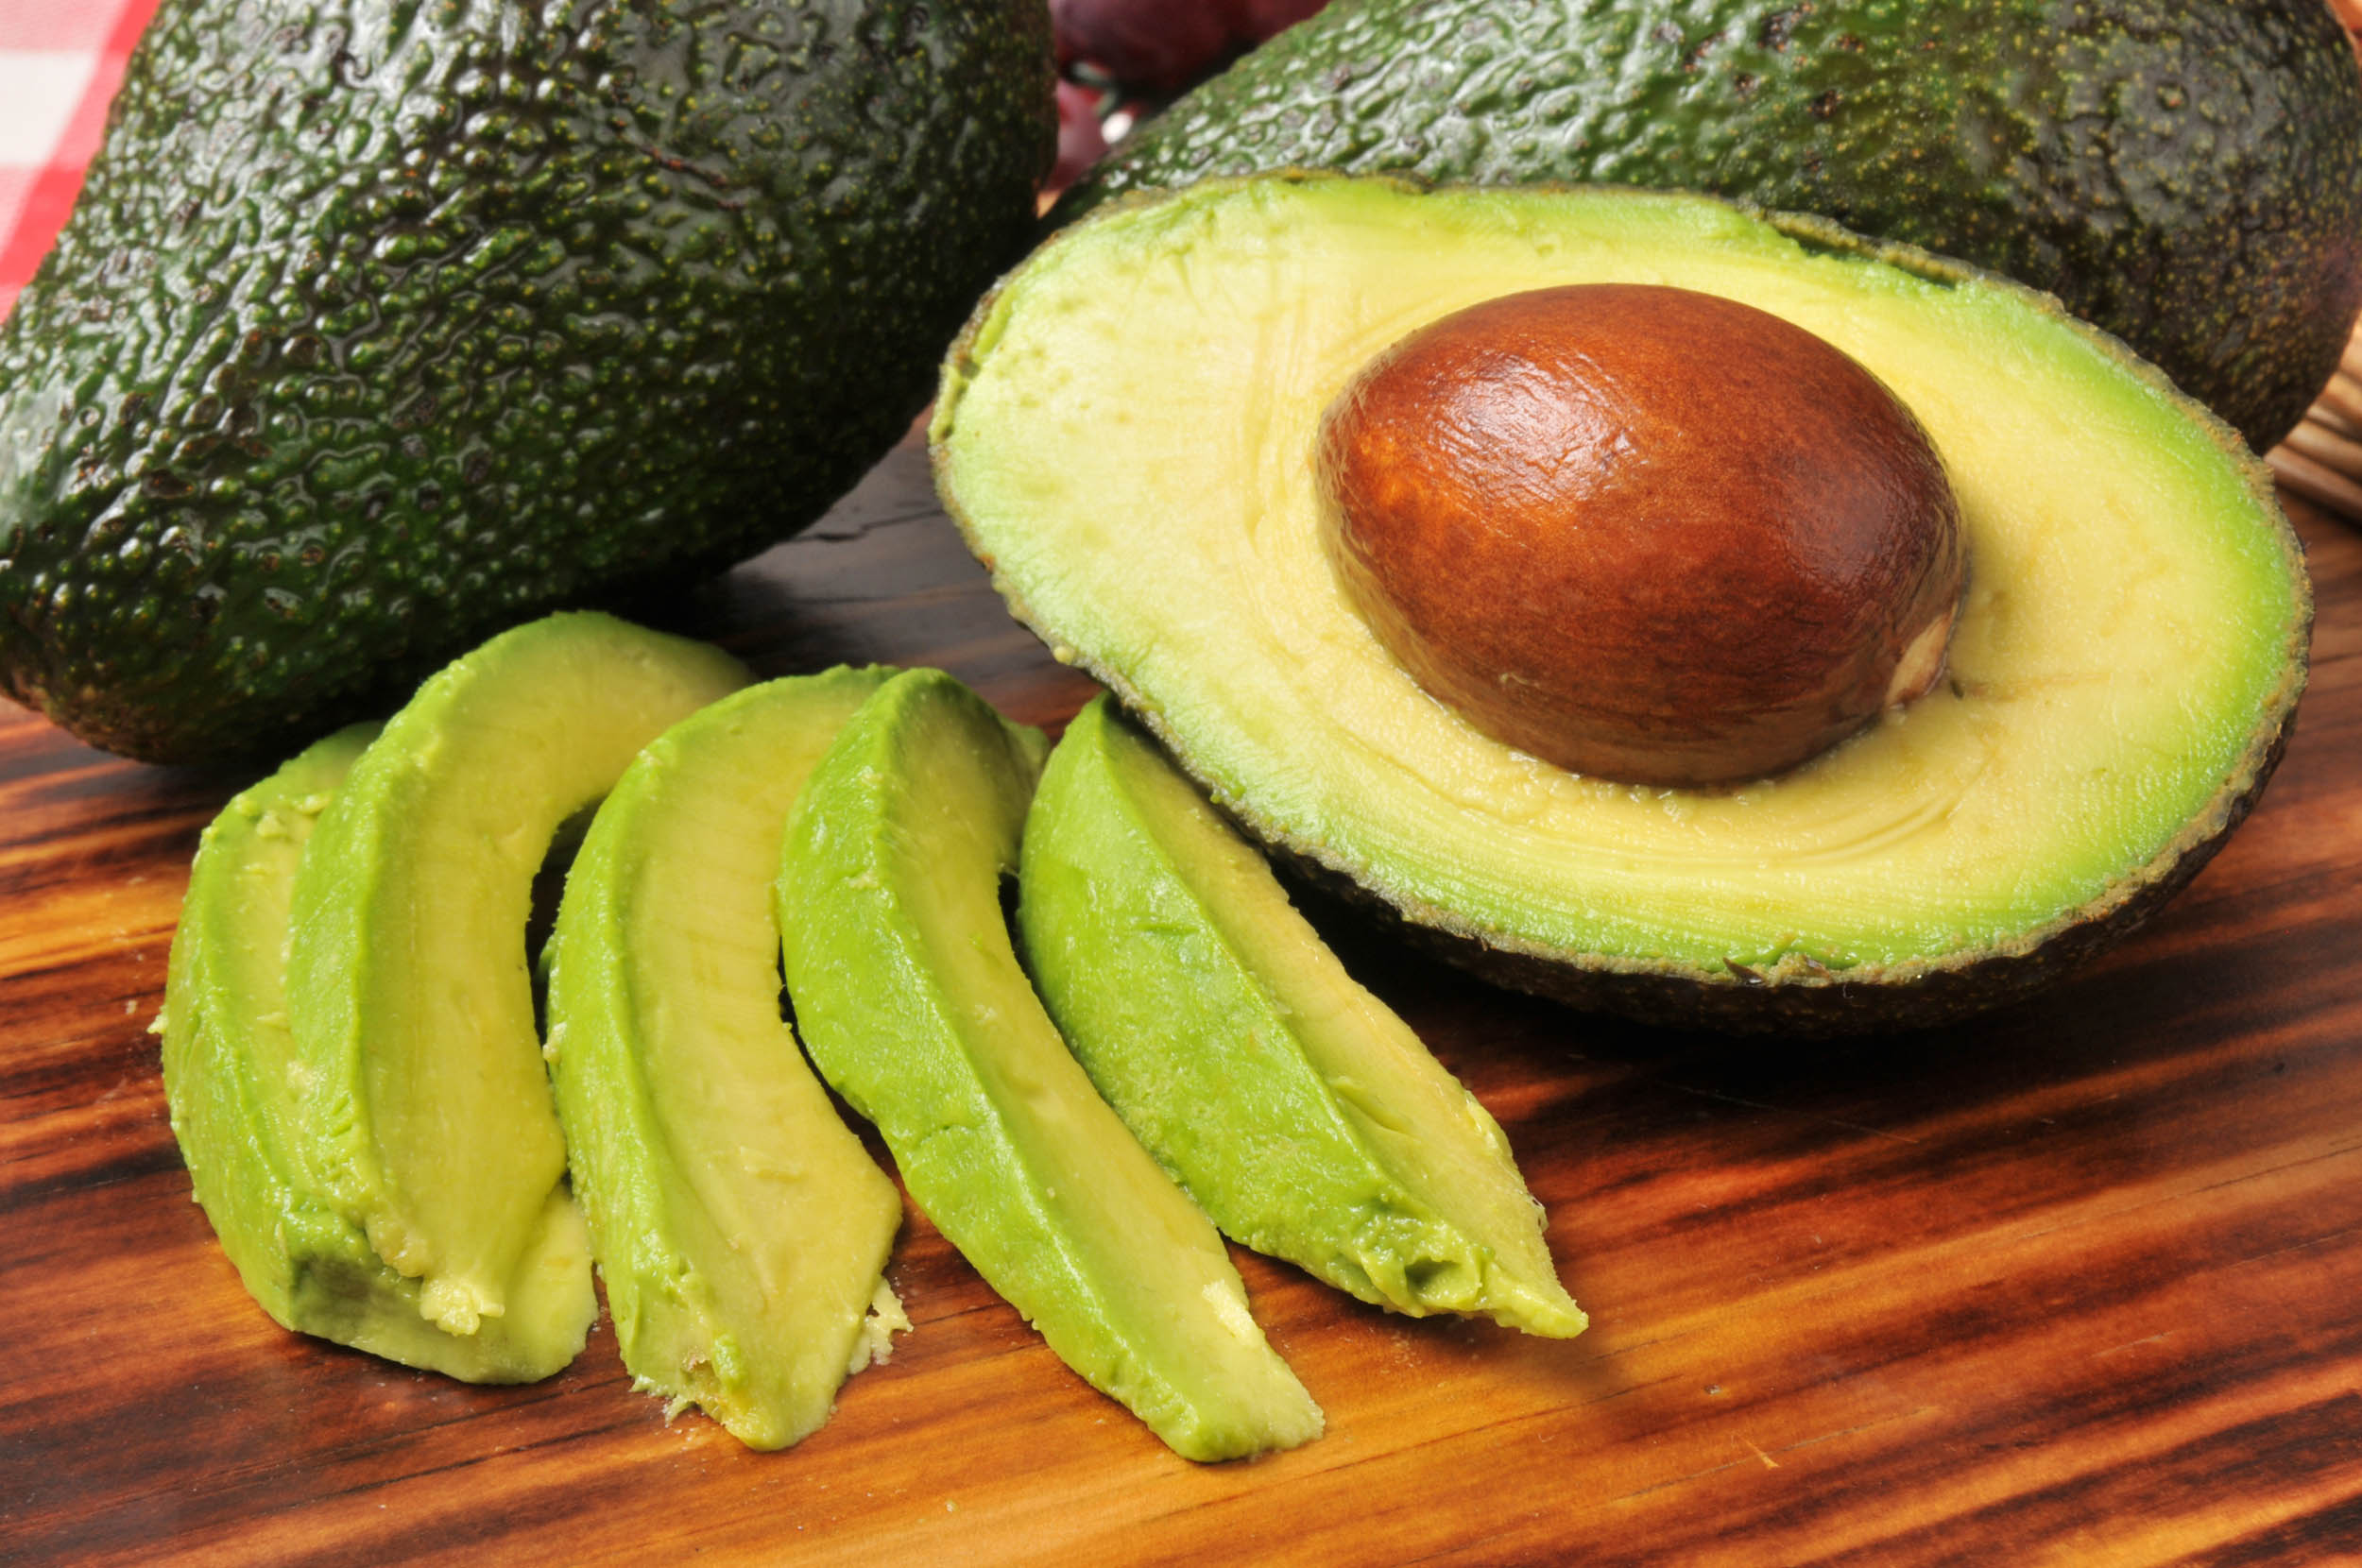 High avocado prices are fueling deforestation in Mexico